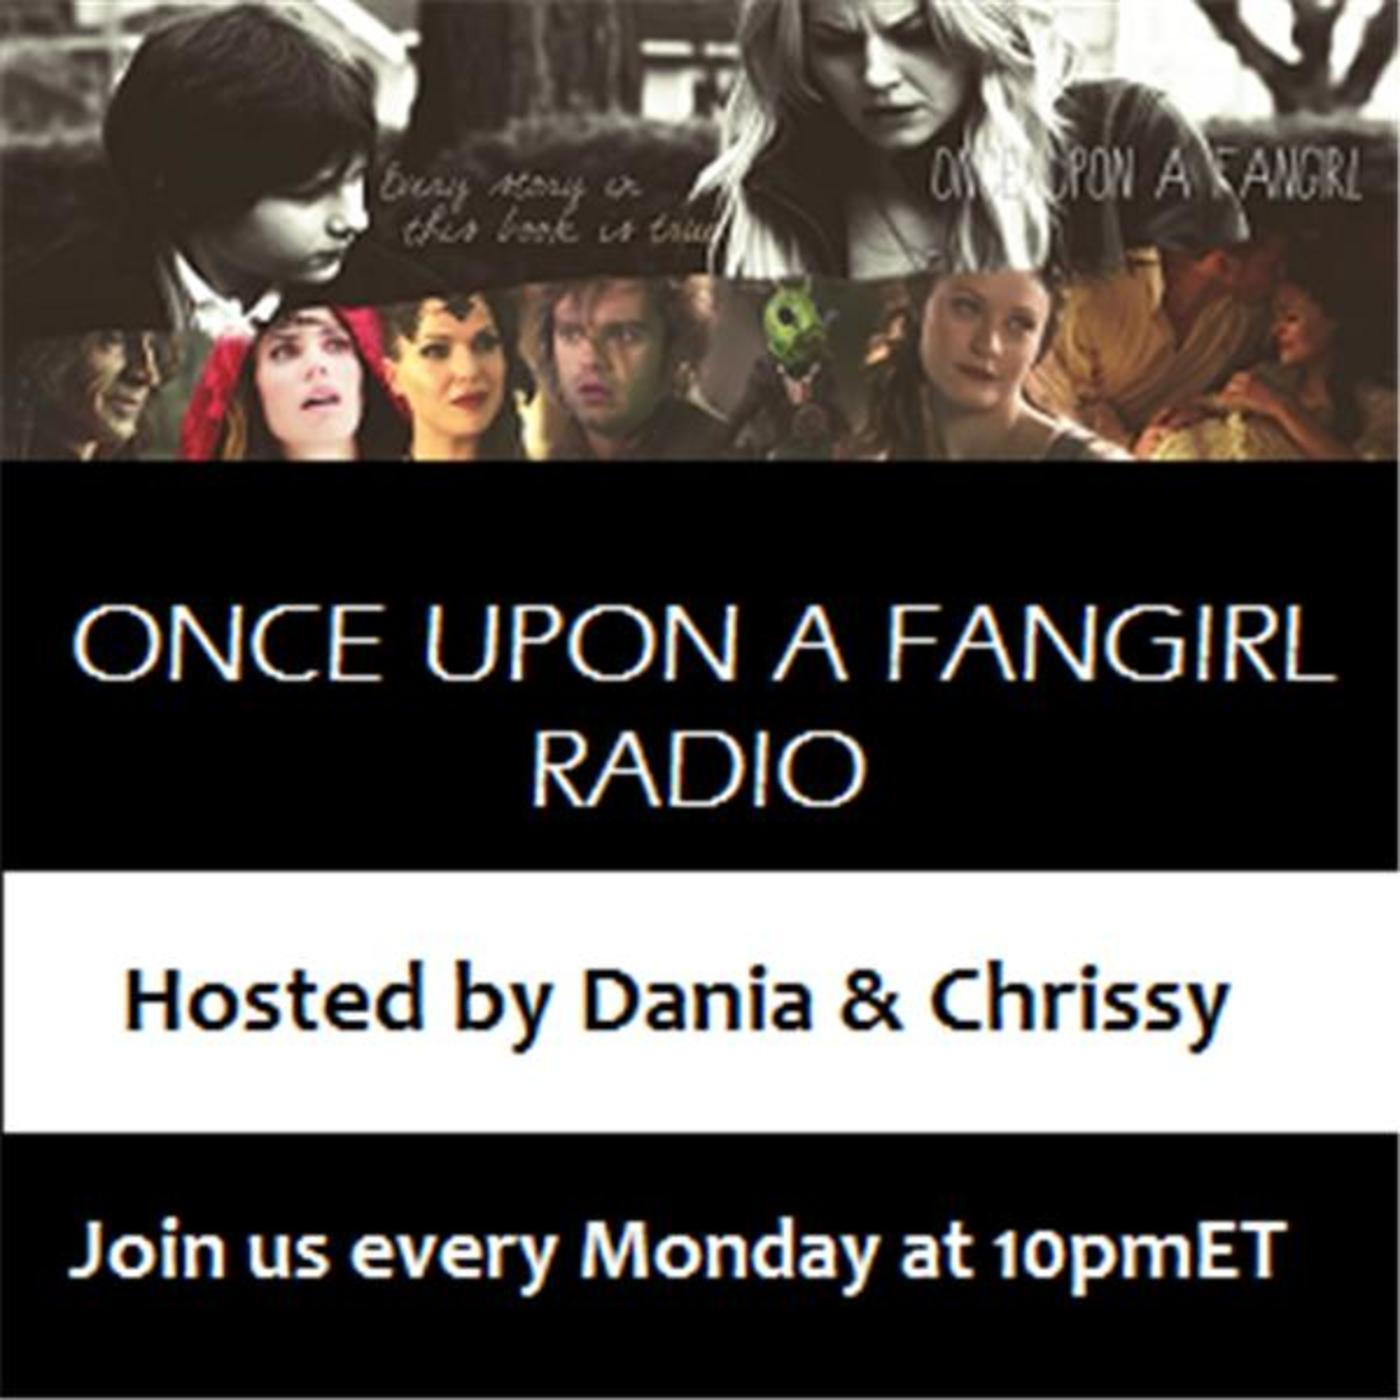 Once Upon a Fangirl Radio